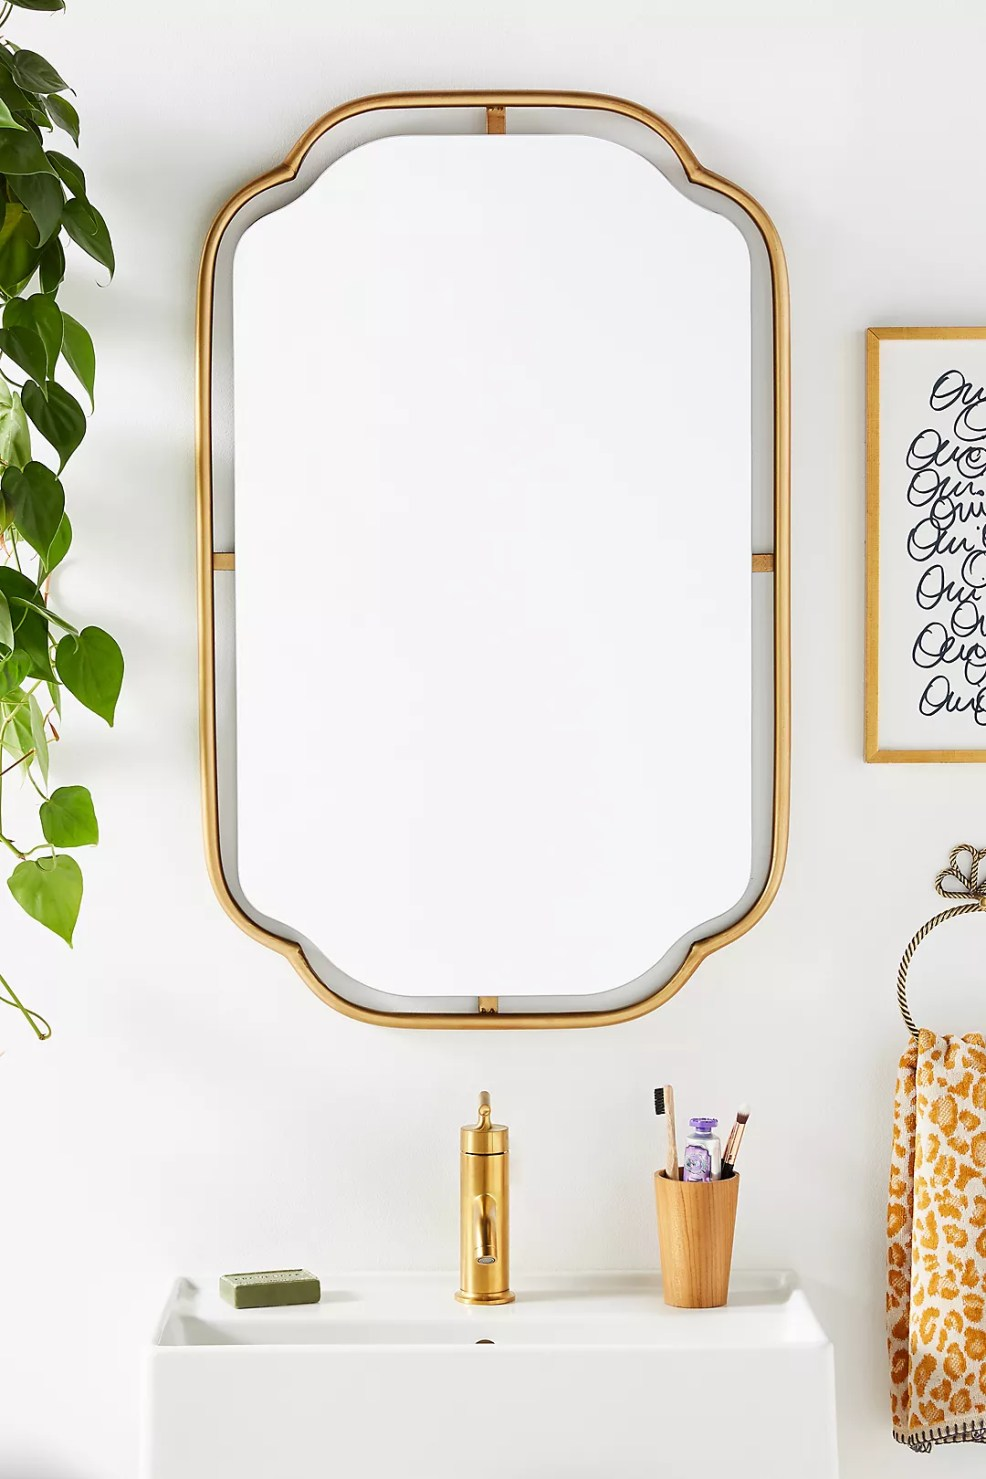 Anthropologie Bathroom by popular US interior design blog, E. Interiors Design: image of a bathroom with a gold mirror, white sink with a gold sink faucet, leopard print towel on a black and gold towel ring, and a wood cup filled with a toothbrush, lotion, and makeup brush.